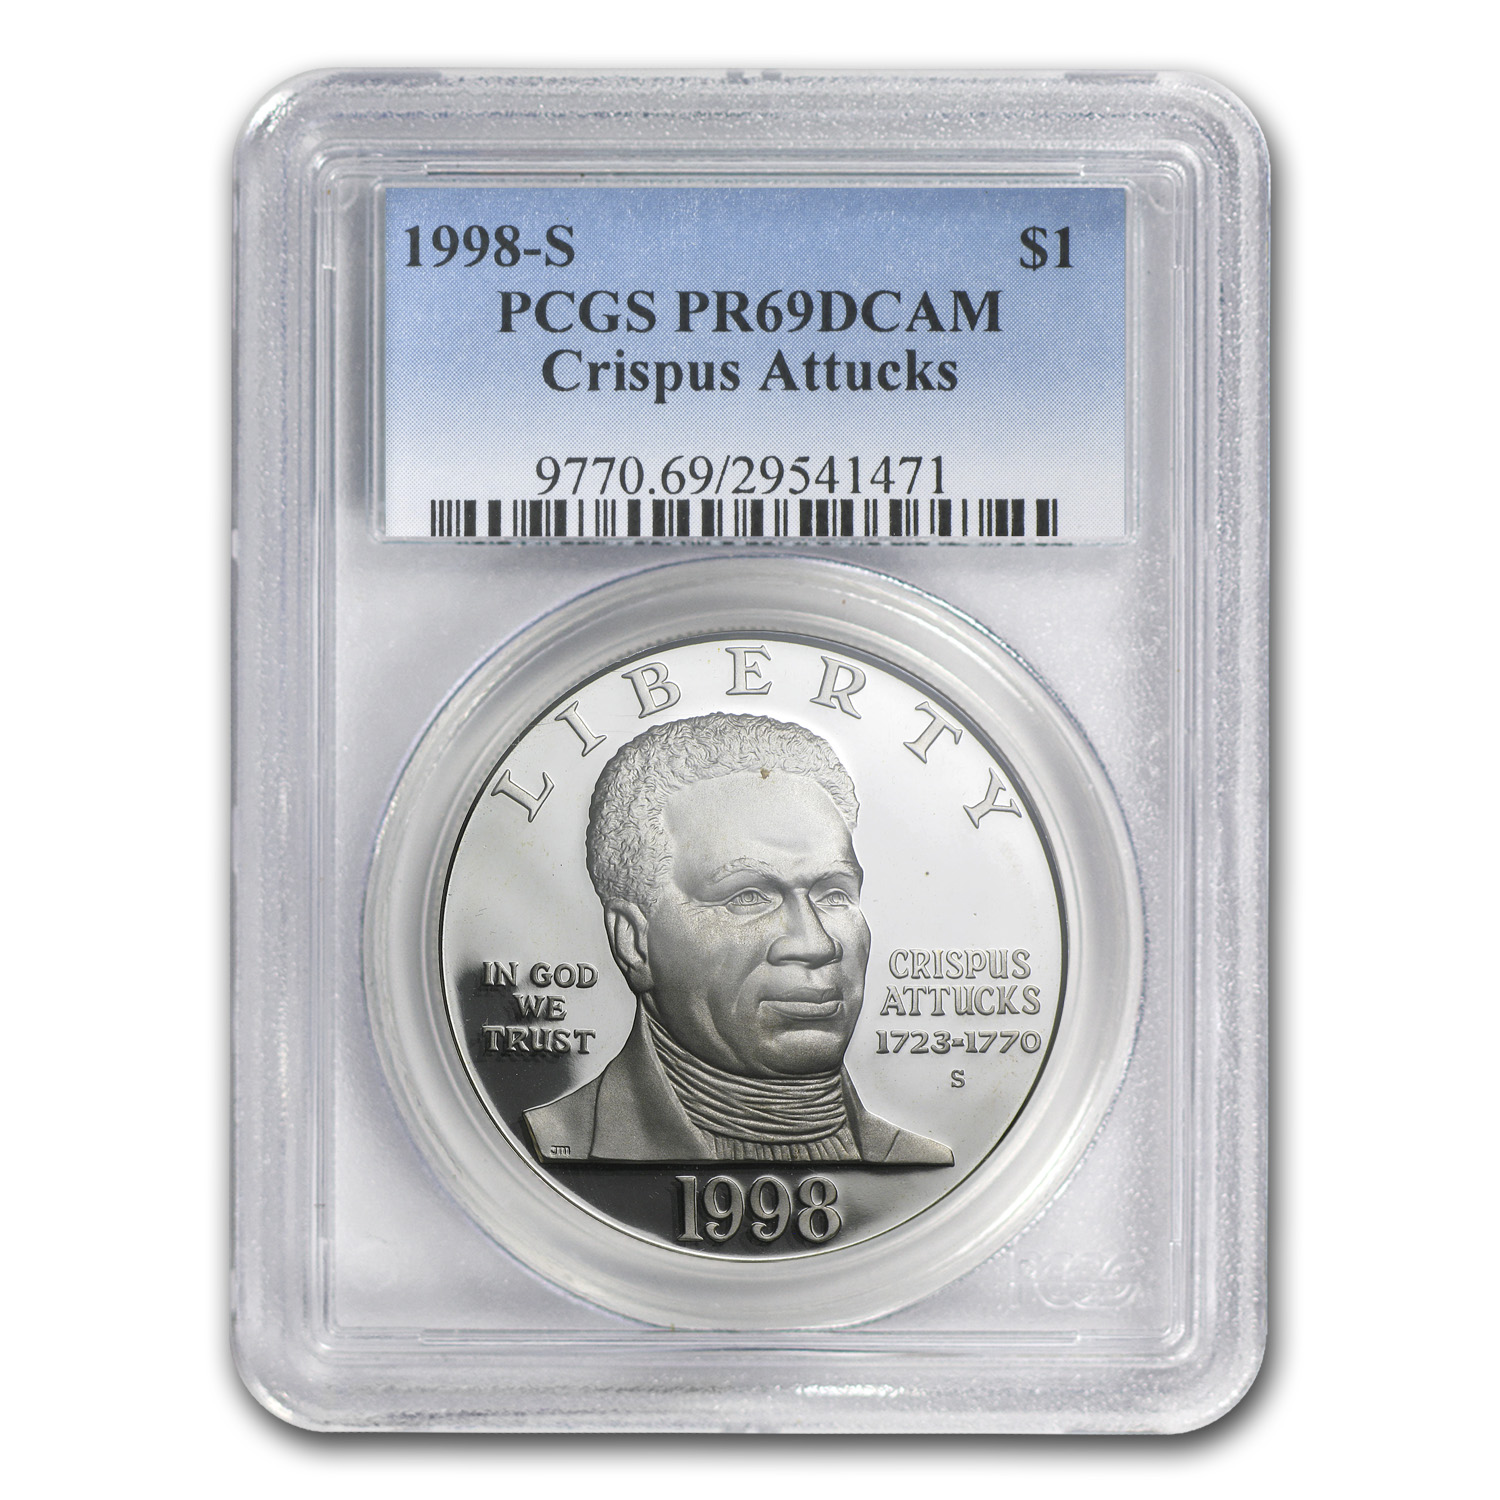 1998-S Black Revolutionary Patriots $1 Silver Commem PR-69 PCGS